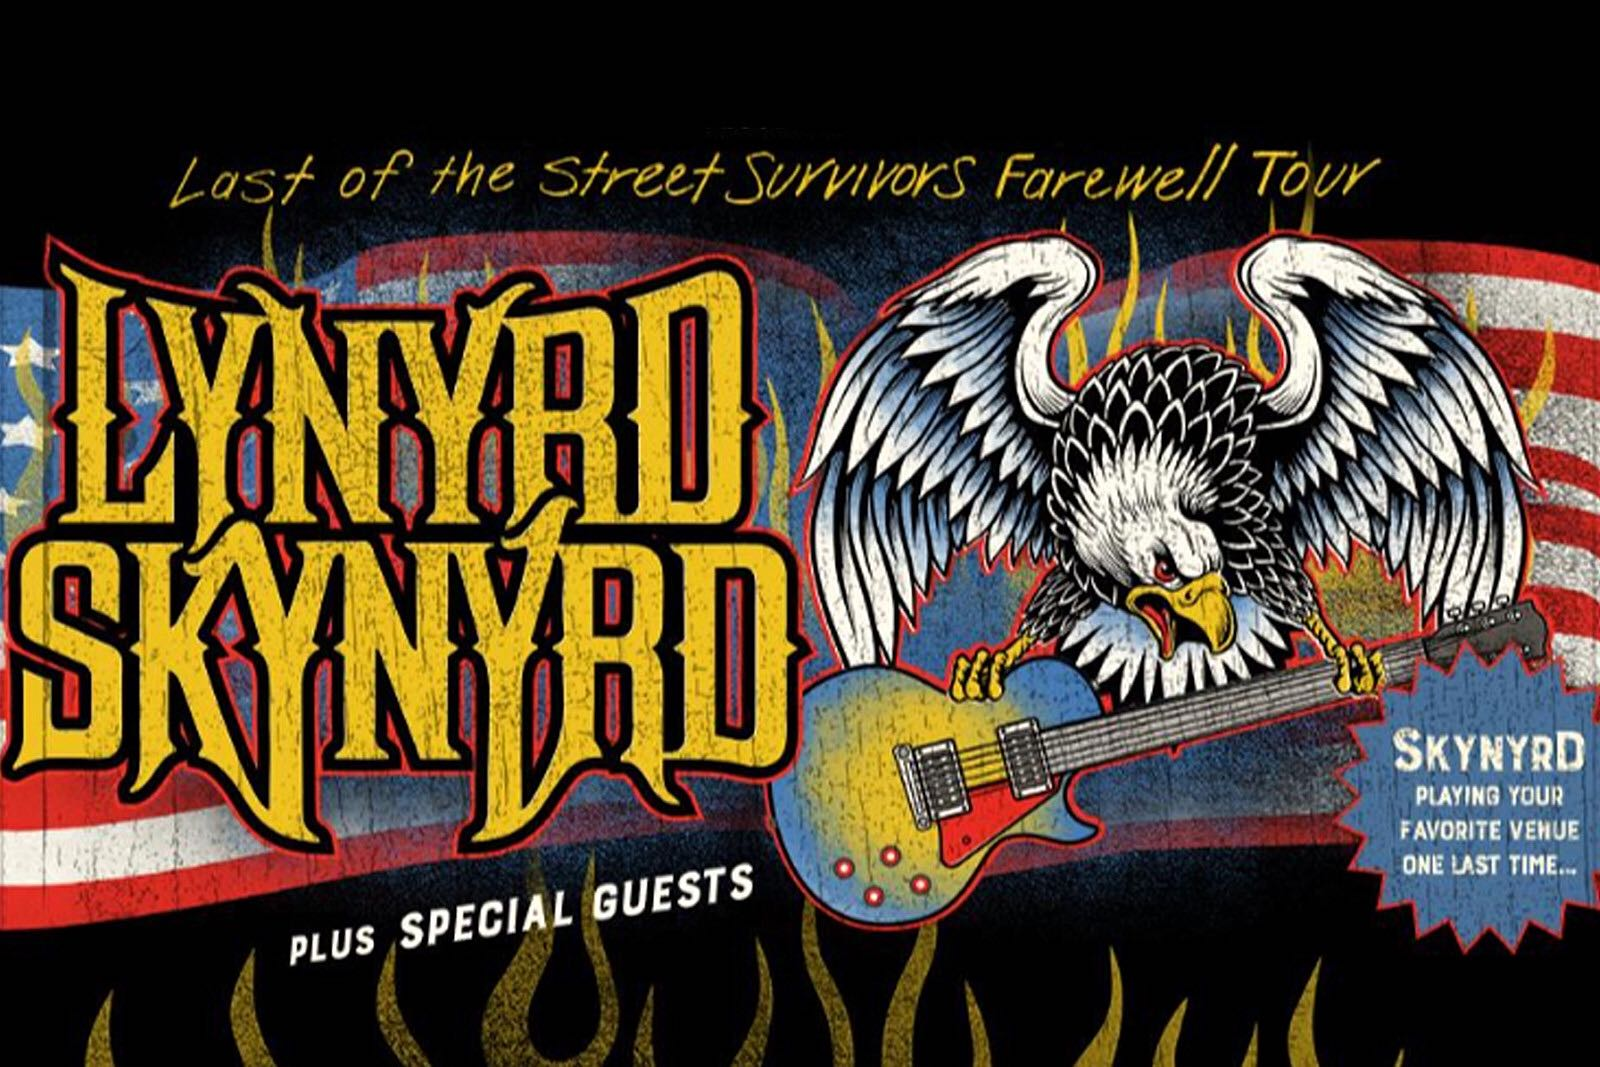 An eagle holds a guitar on a Lynyrd Skynyrd tour poster